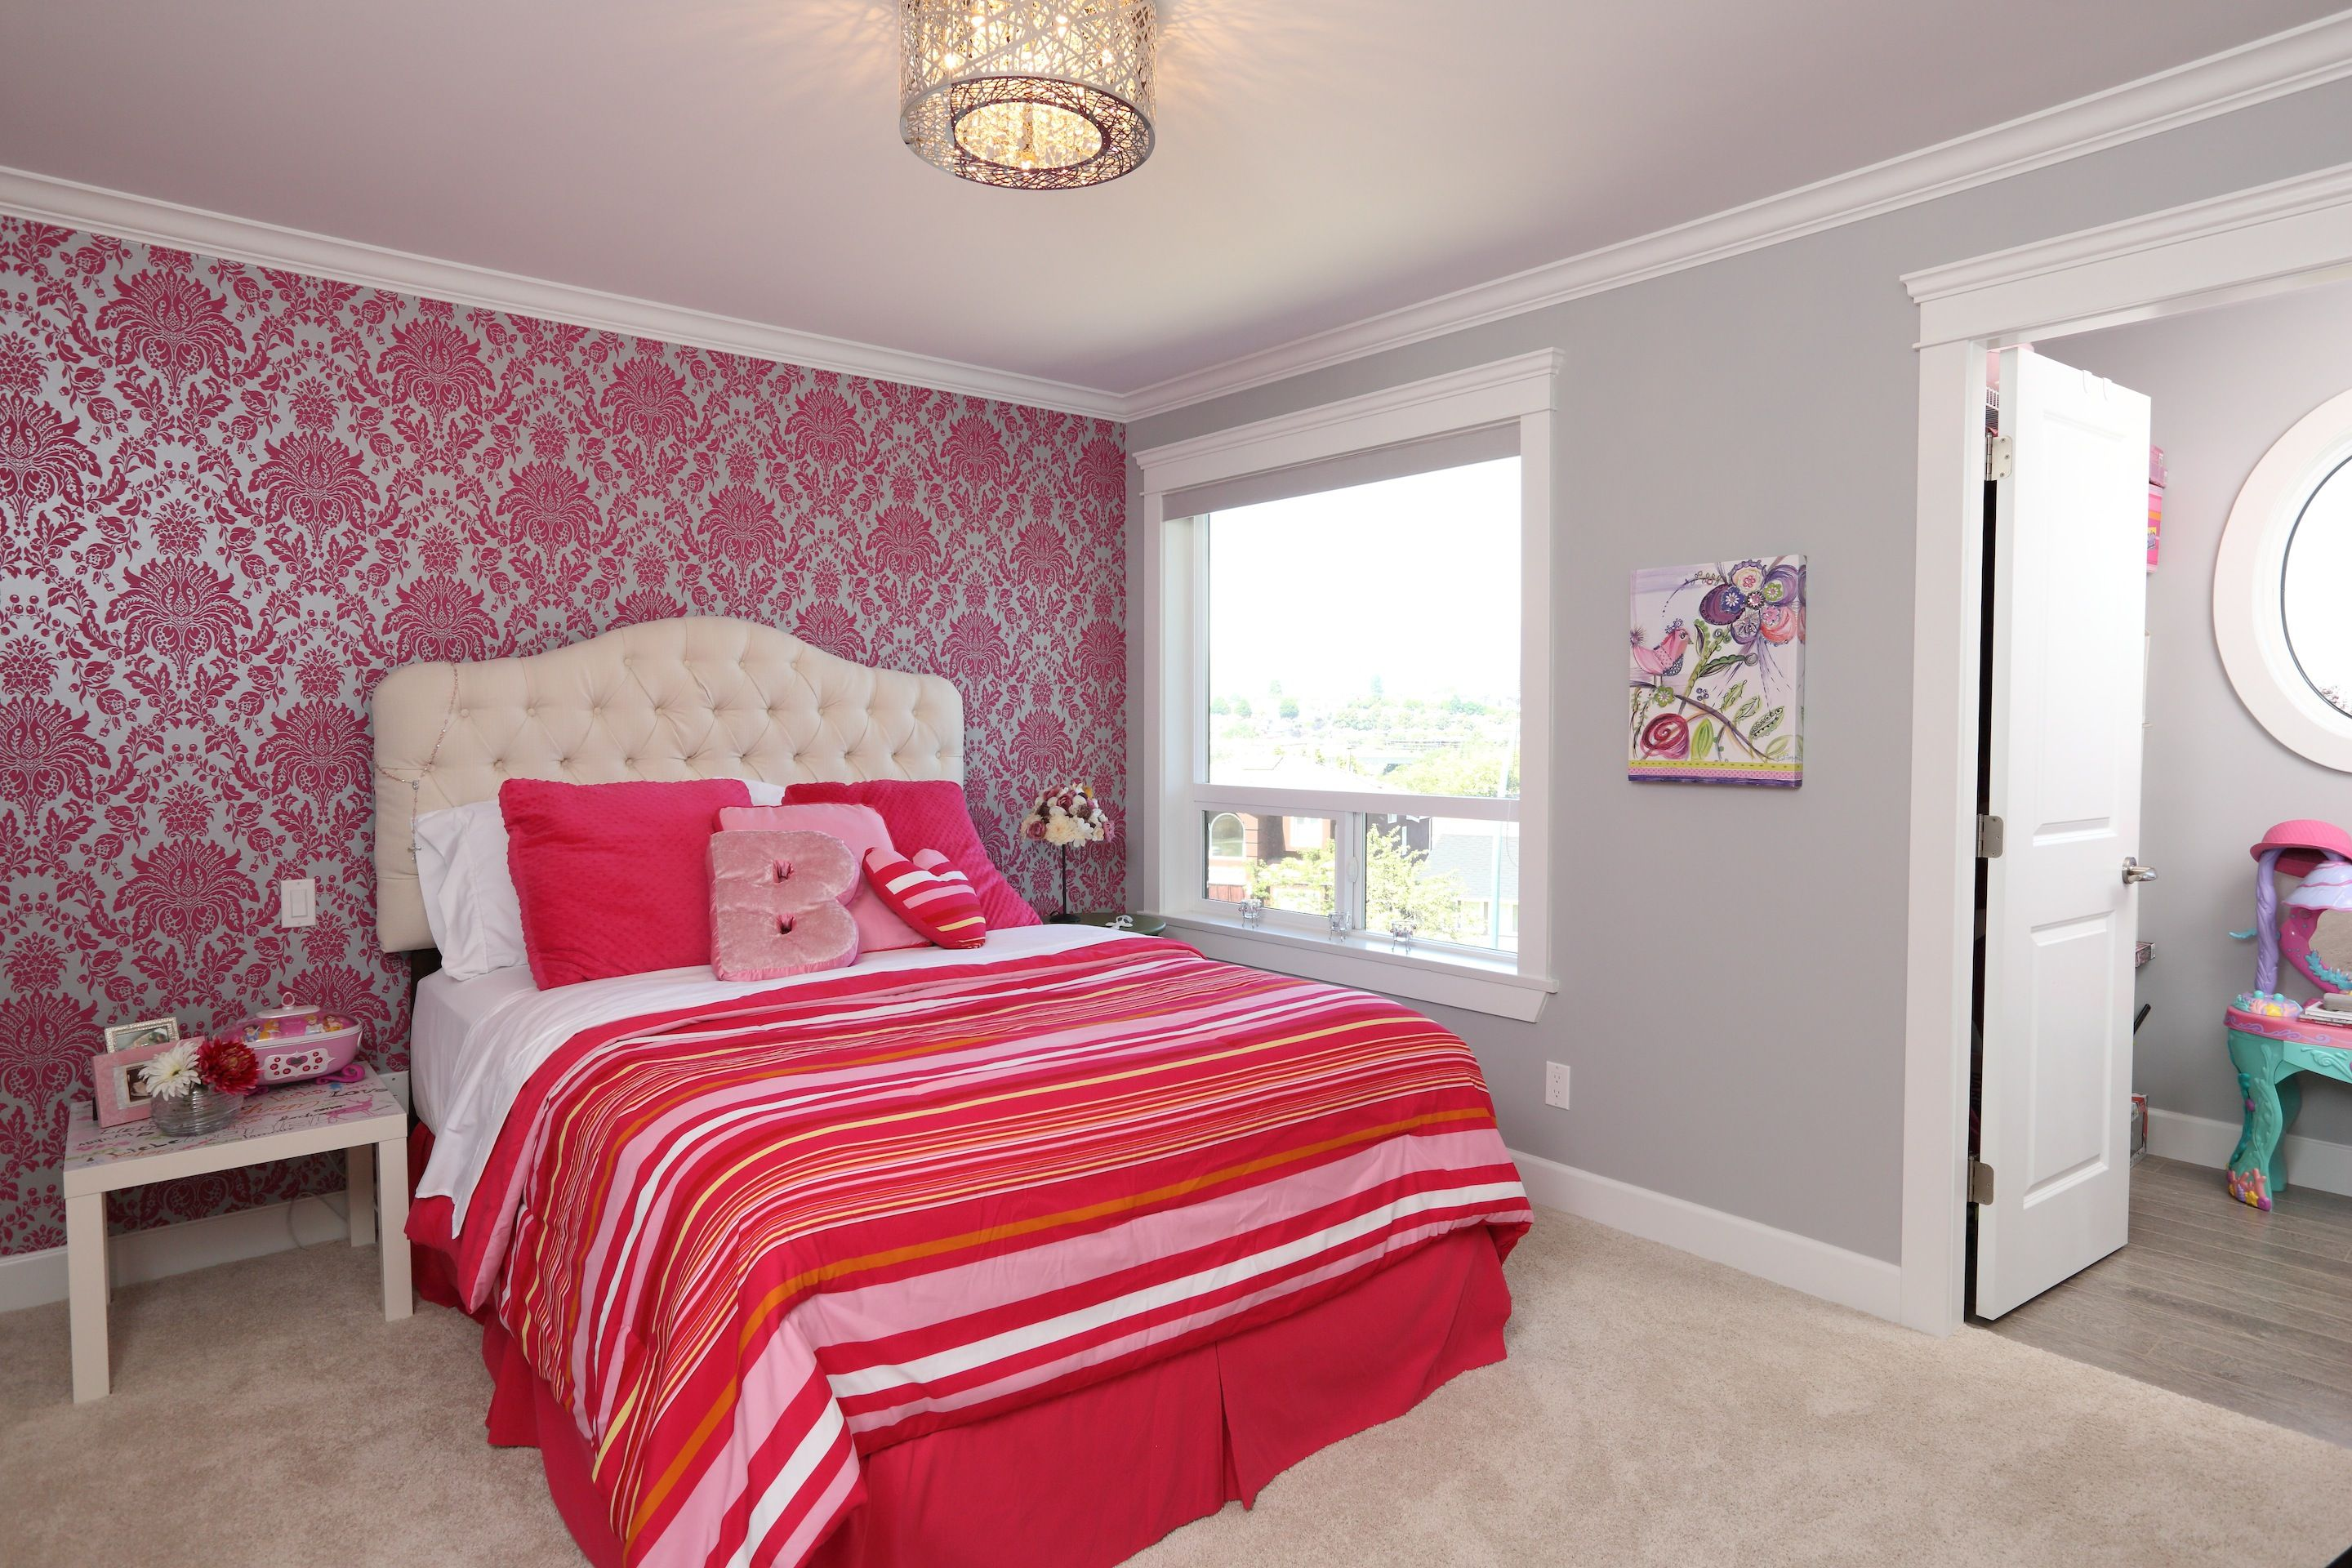 Our clients let their daughter get involved in designing her room - and the results are beautiful! #custom #home